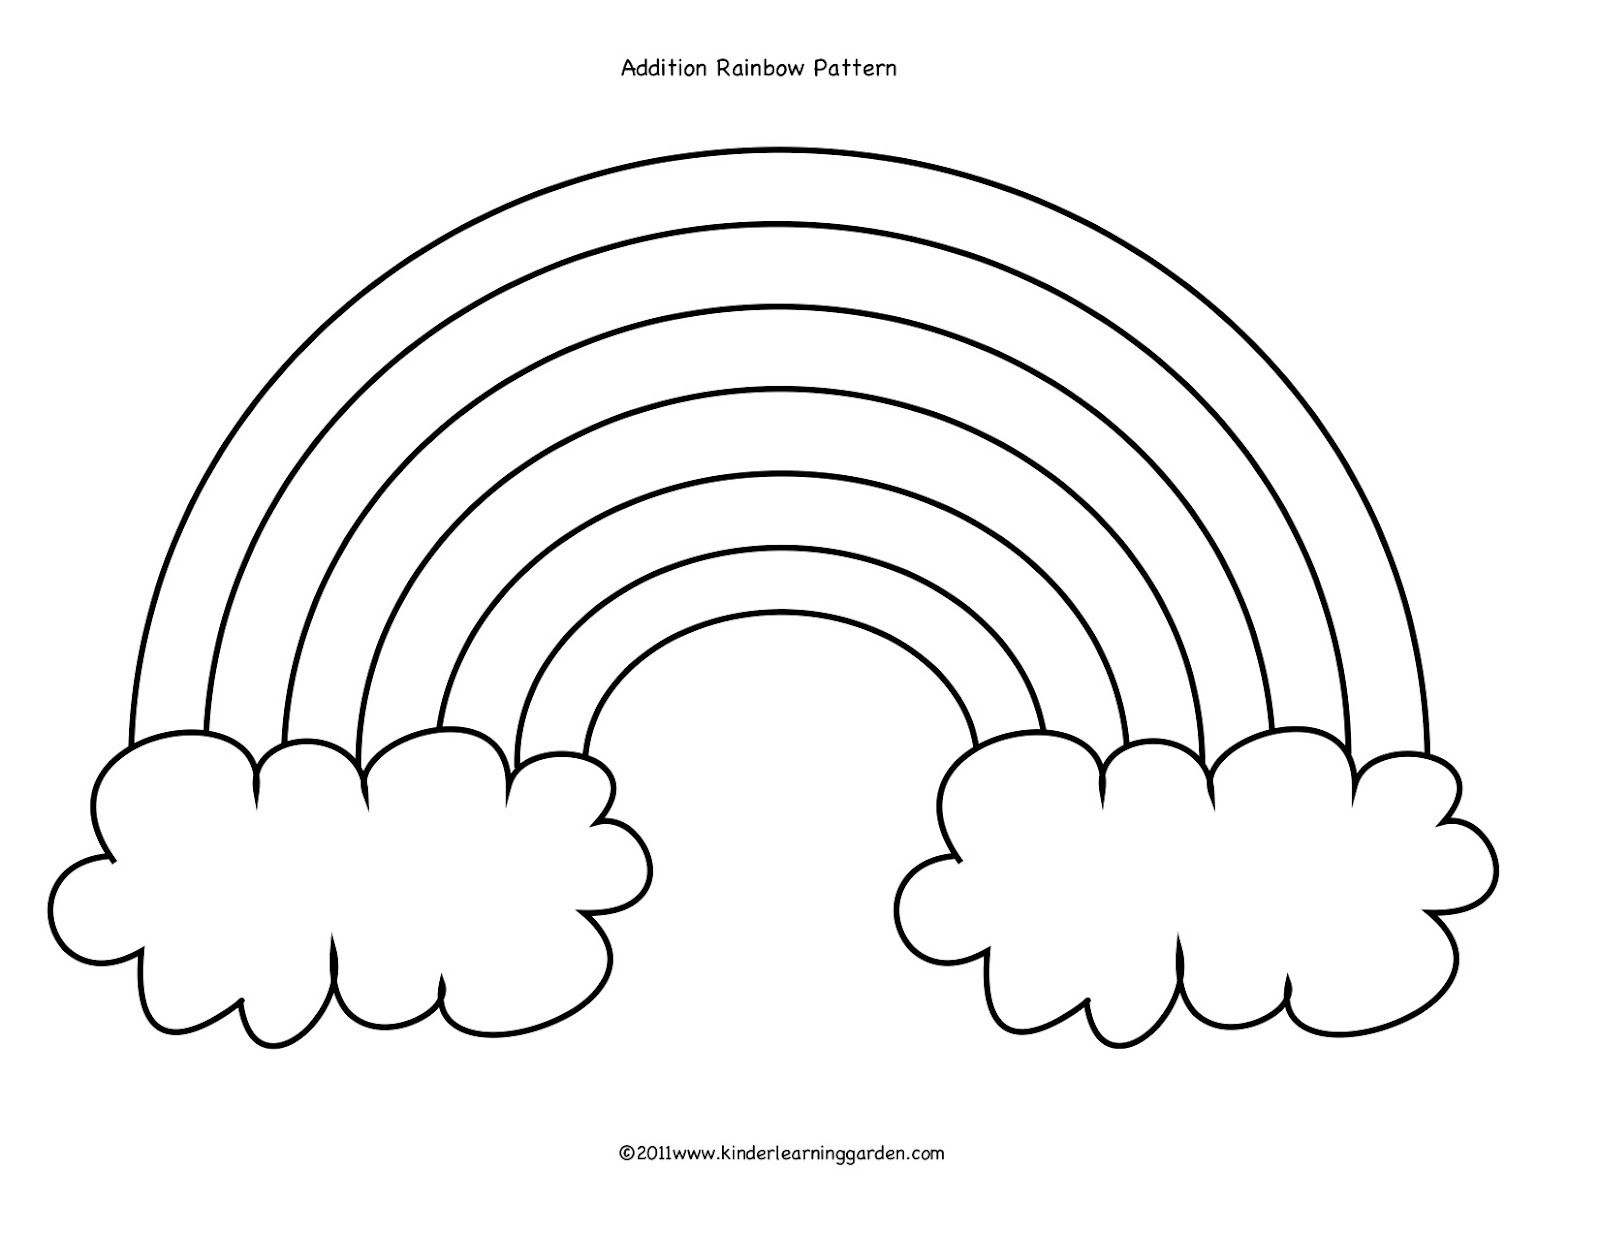 Rainbow Cloud Addition Rainbow Drawing Preschool Coloring Pages